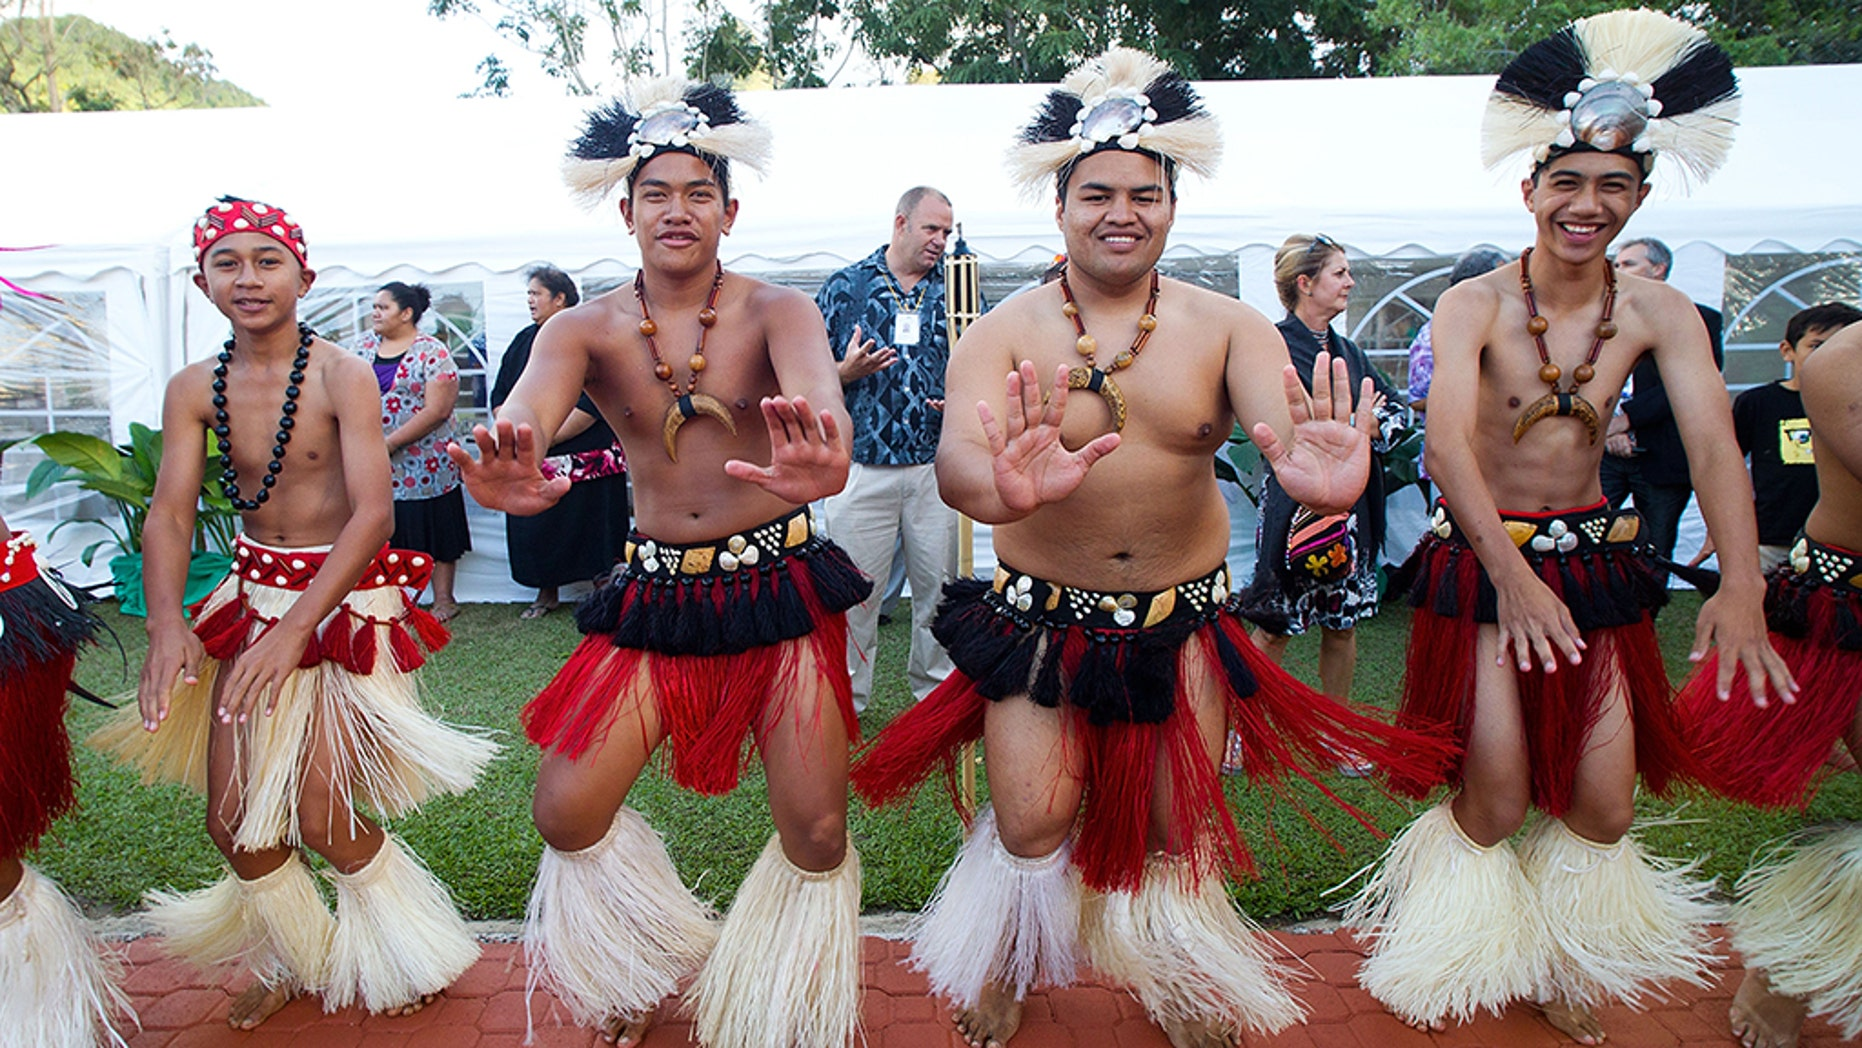 The Cook Islands have formed a committee to change their name from to reflect its Polynesian heritage